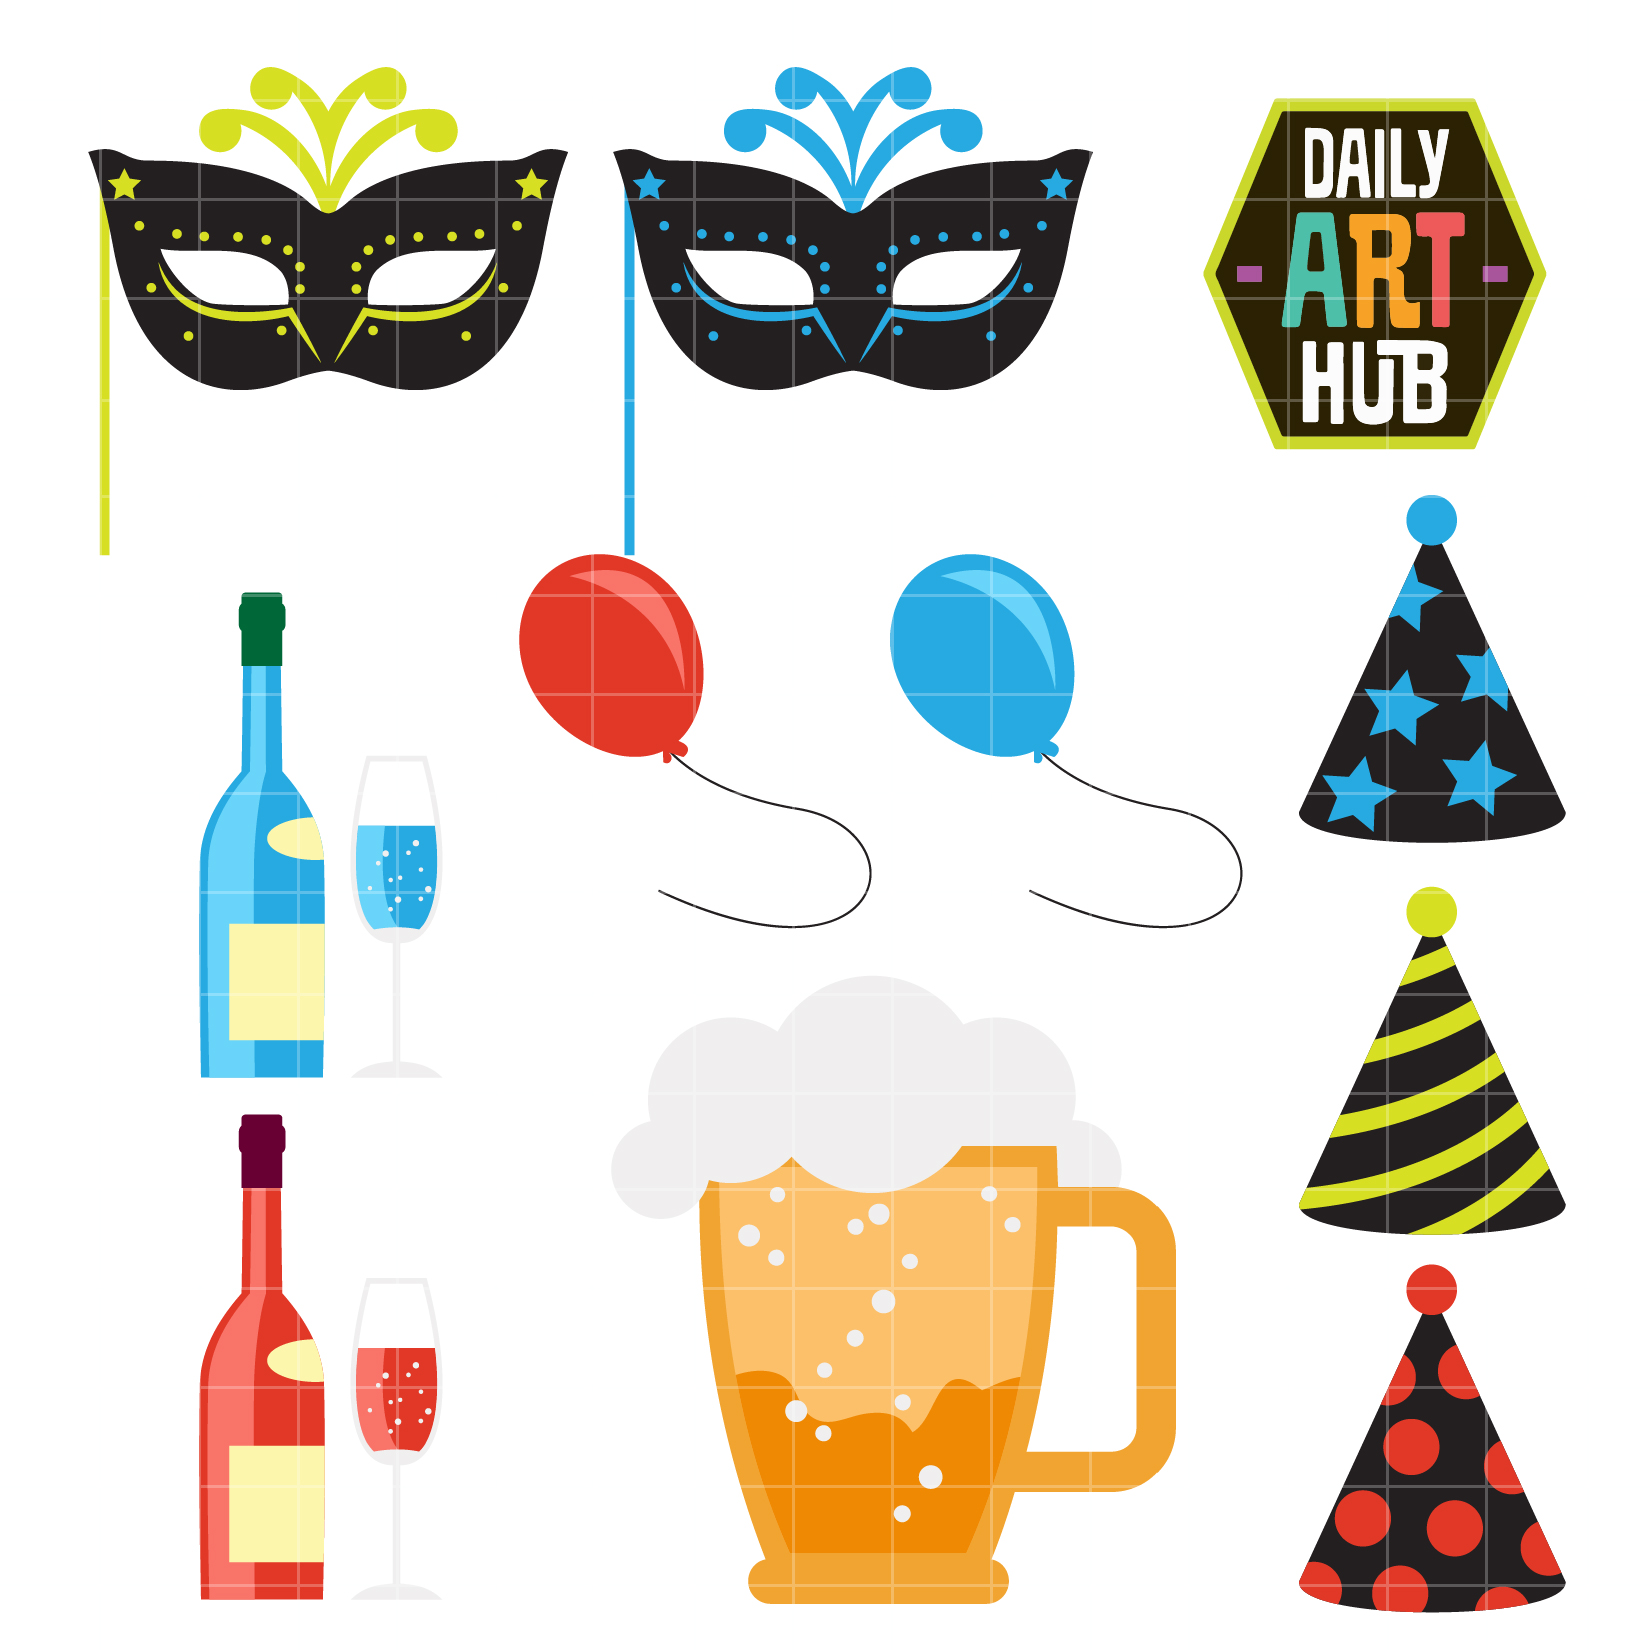 1650x1650 New Year's Eve Clip Art Set Daily Art Hub Free Clip Art Everyday